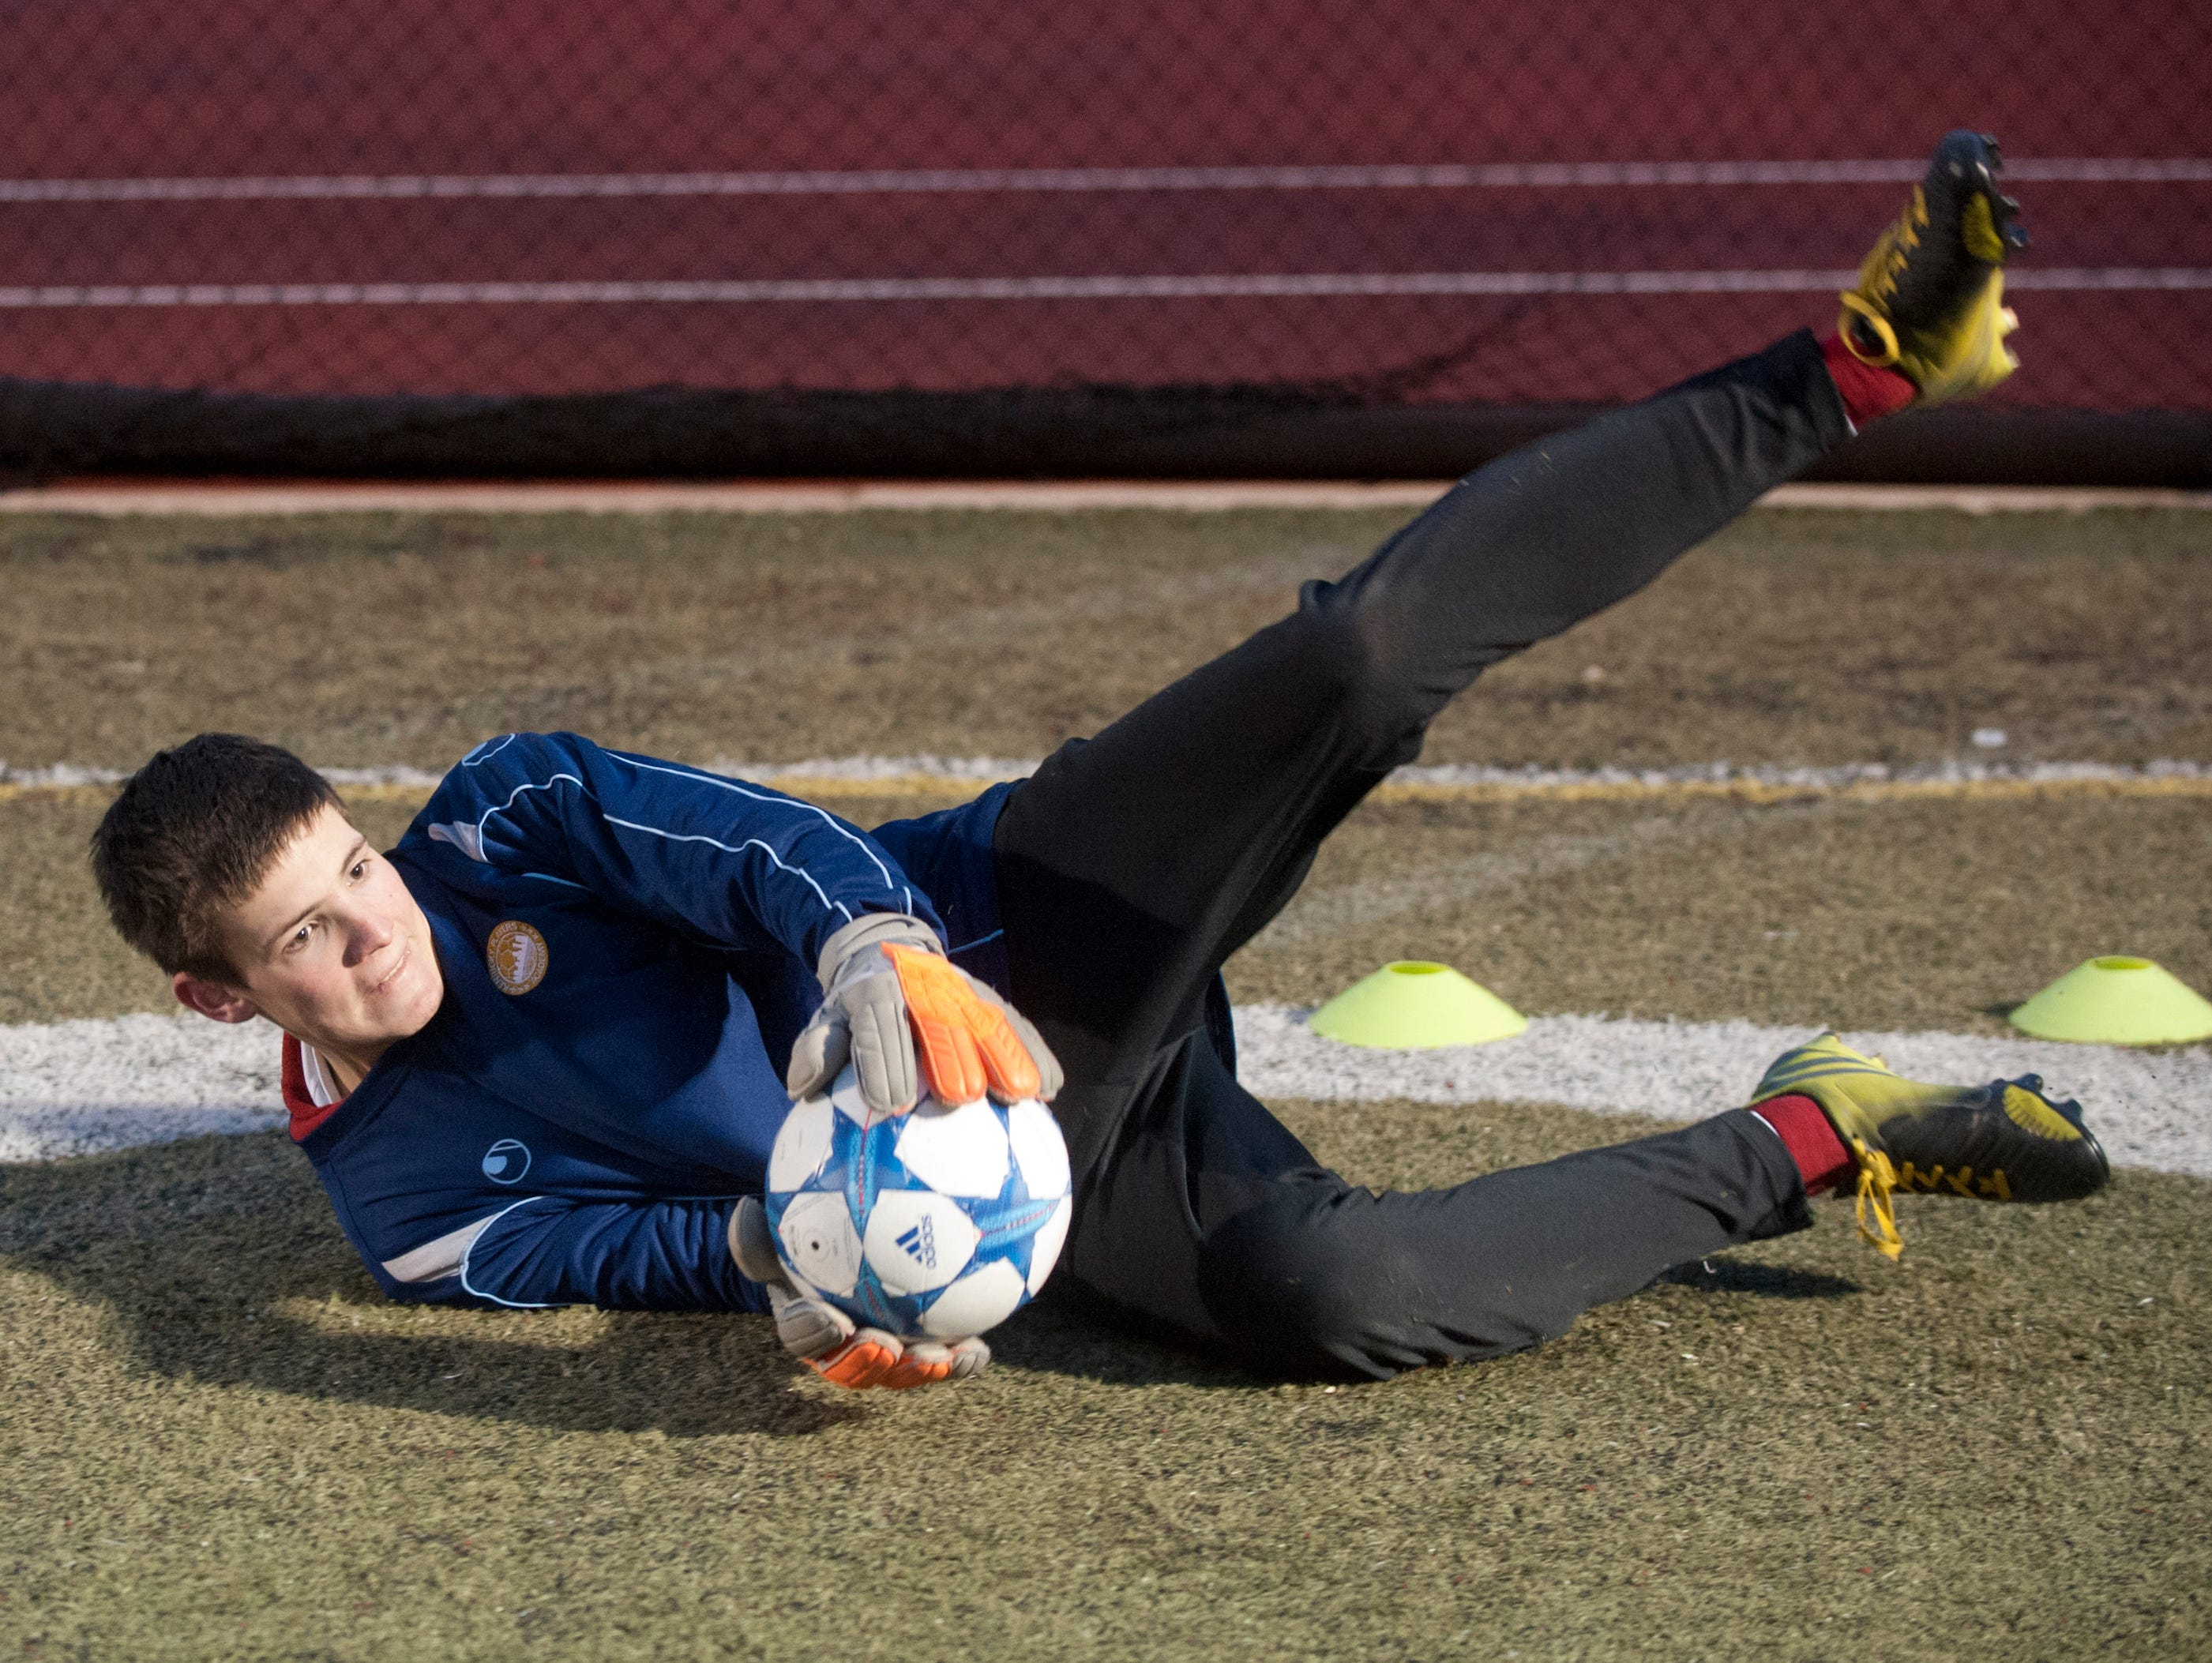 Kentucky Players Academy goalkeeper Rob Cox catches a ball during practice at St. Xavier High School's field. 15 February, 2016